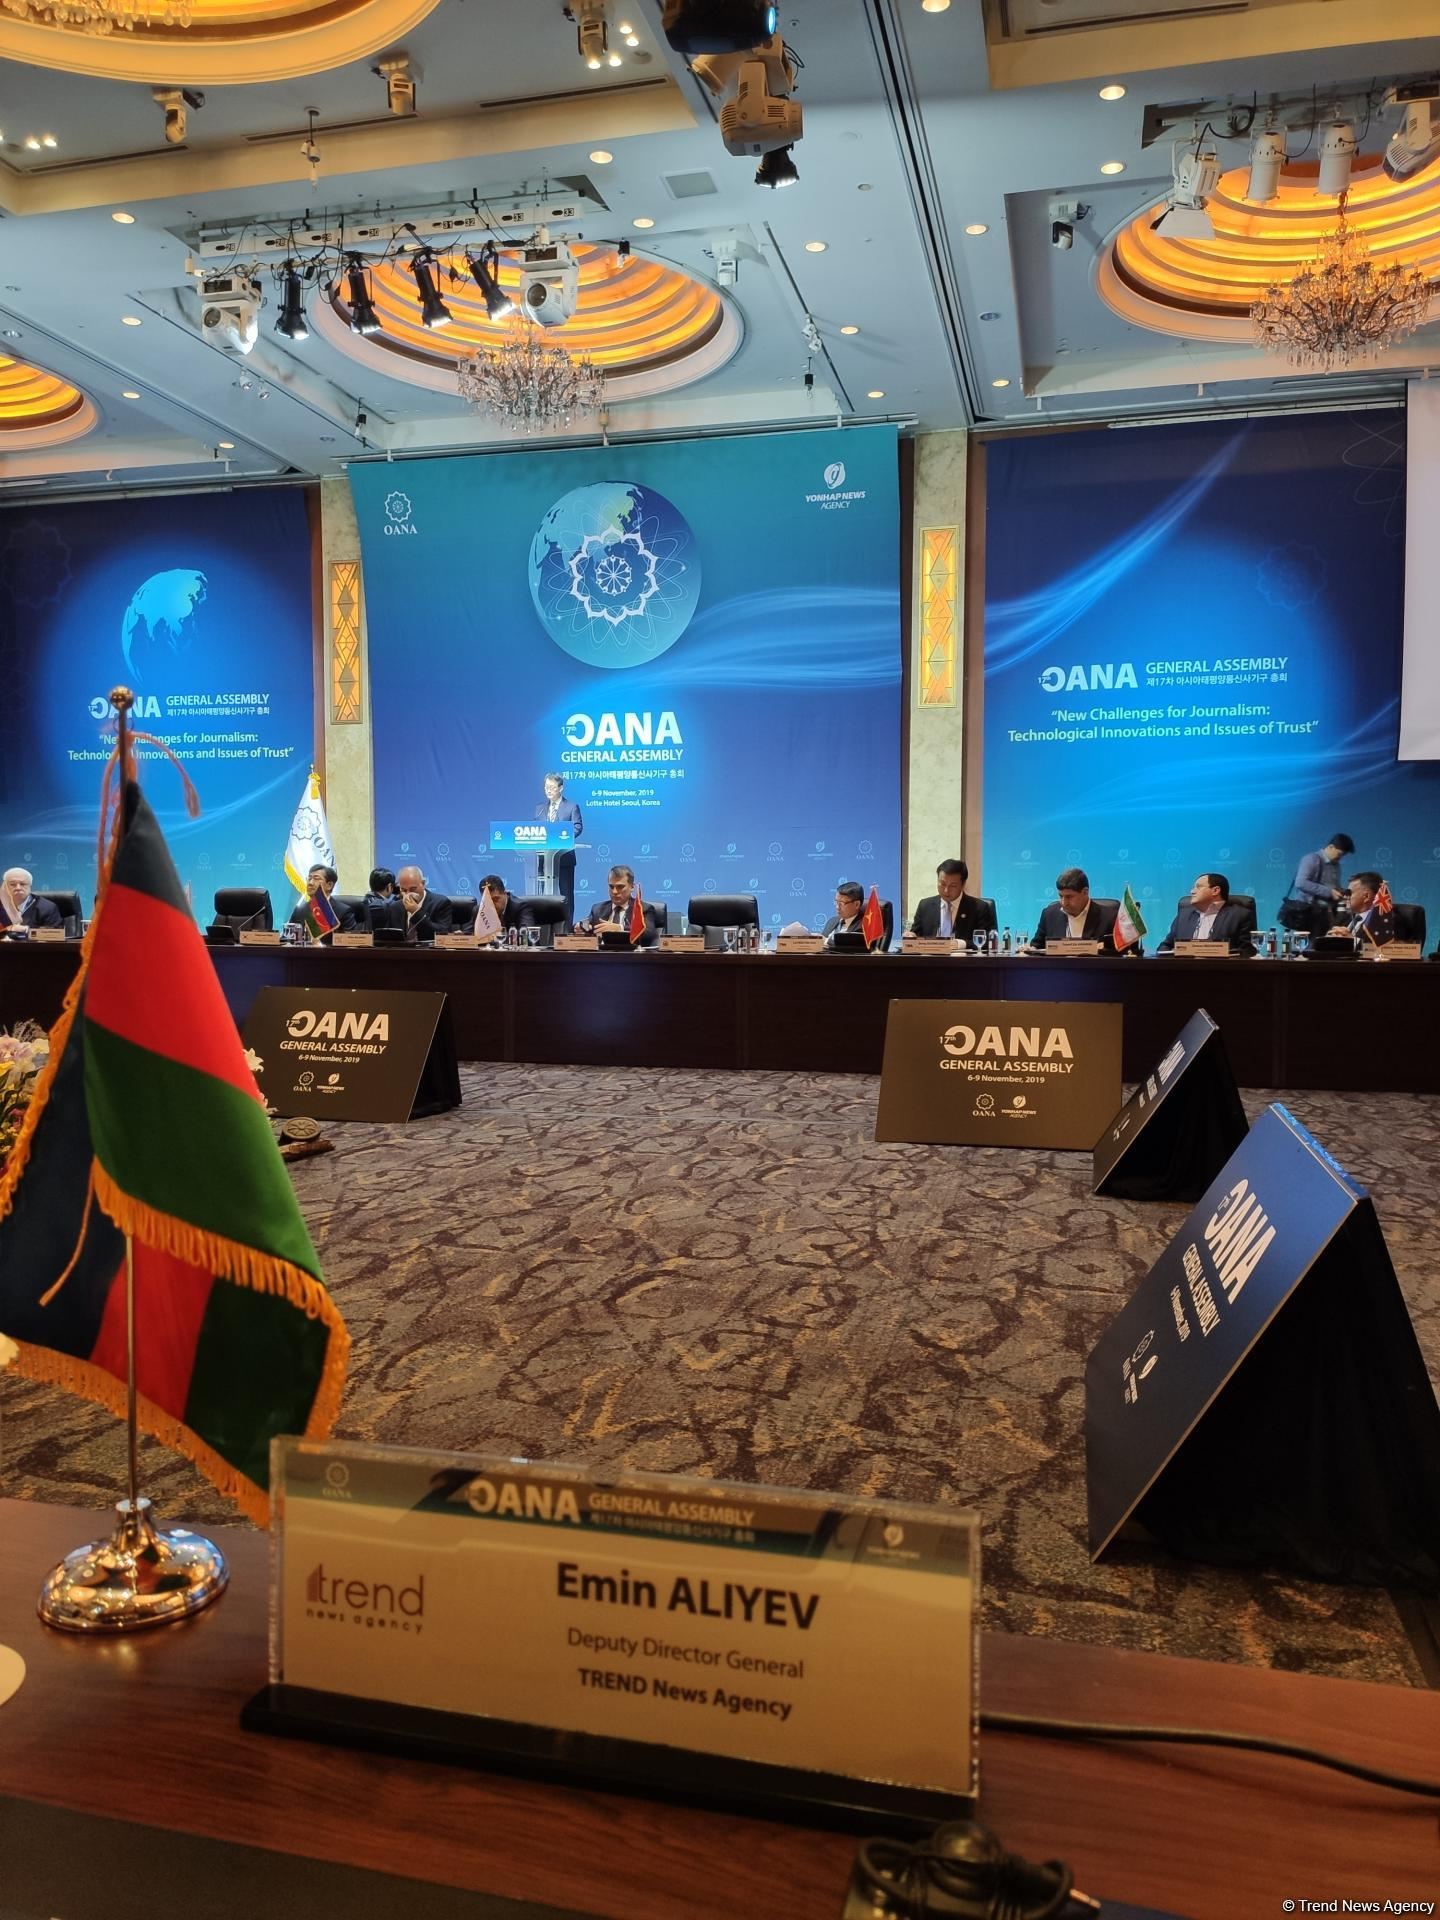 Trend News Agency taking part in 17th OANA General Assembly in Seoul (PHOTO)